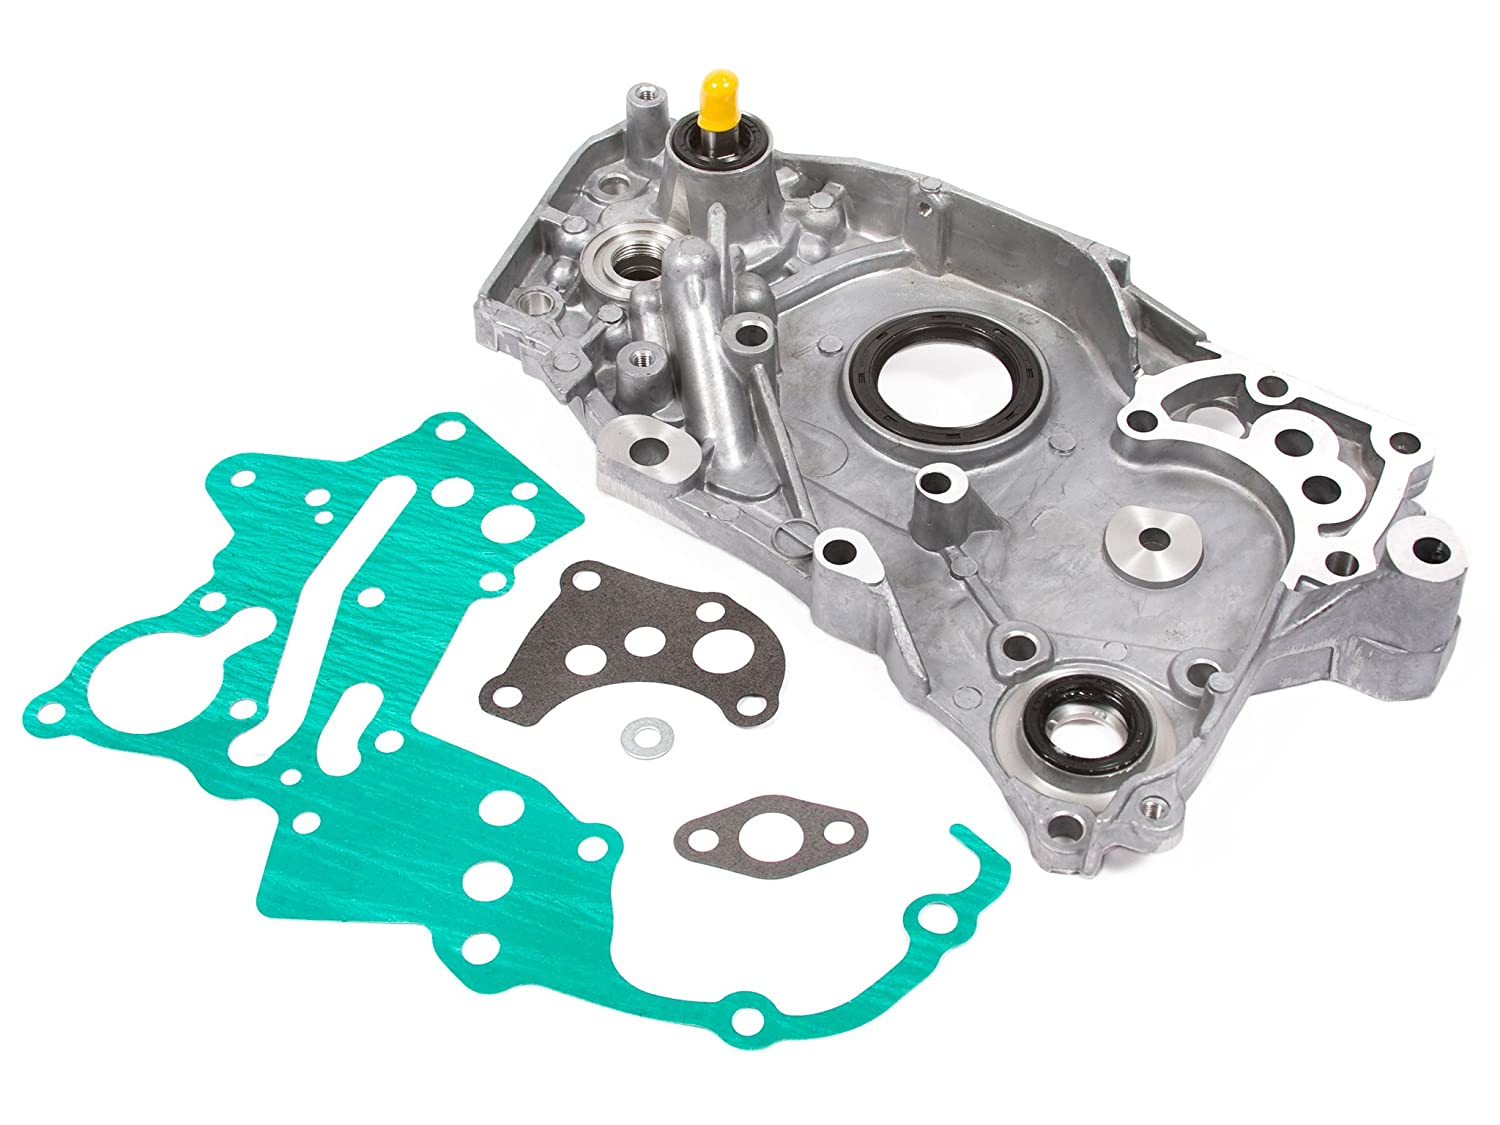 Evergreen OP5005 89-92 Eagle Hyundai Mitsubishi Plymouth 1.6 1.8 2.0 DOHC 4G63 4G63T Oil Pump Evergreen Parts And Components